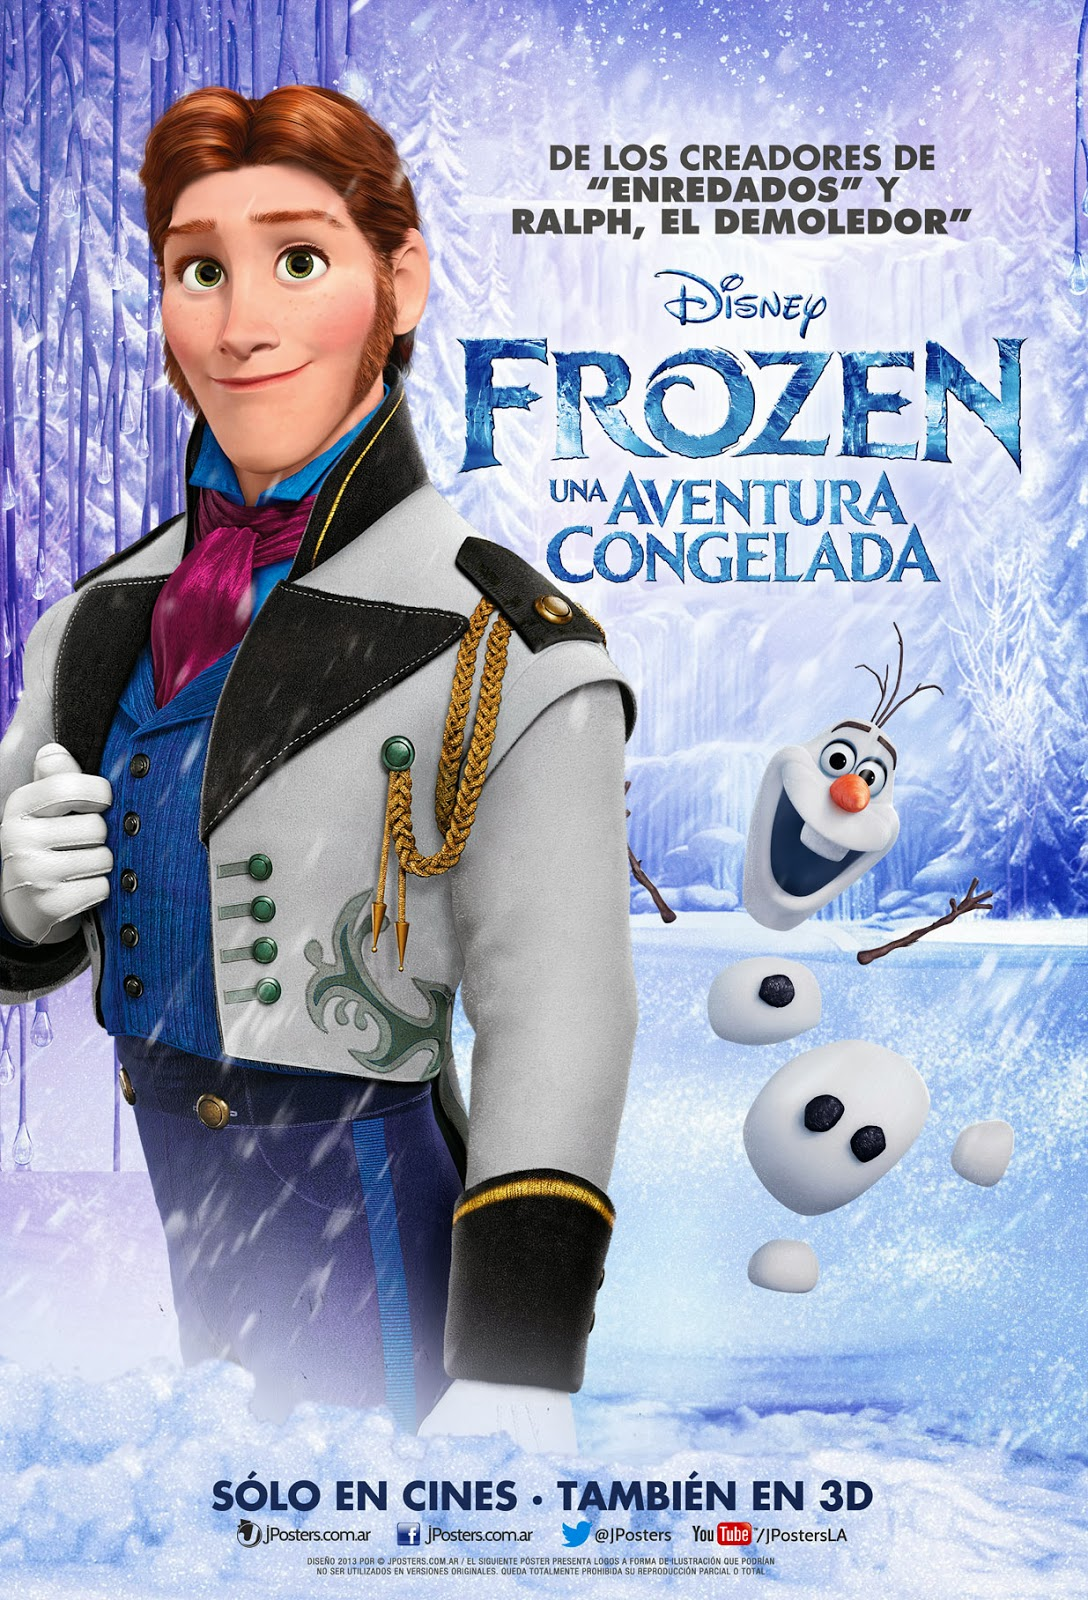 Hans Poster Frozen Photo 36141514 Fanpop